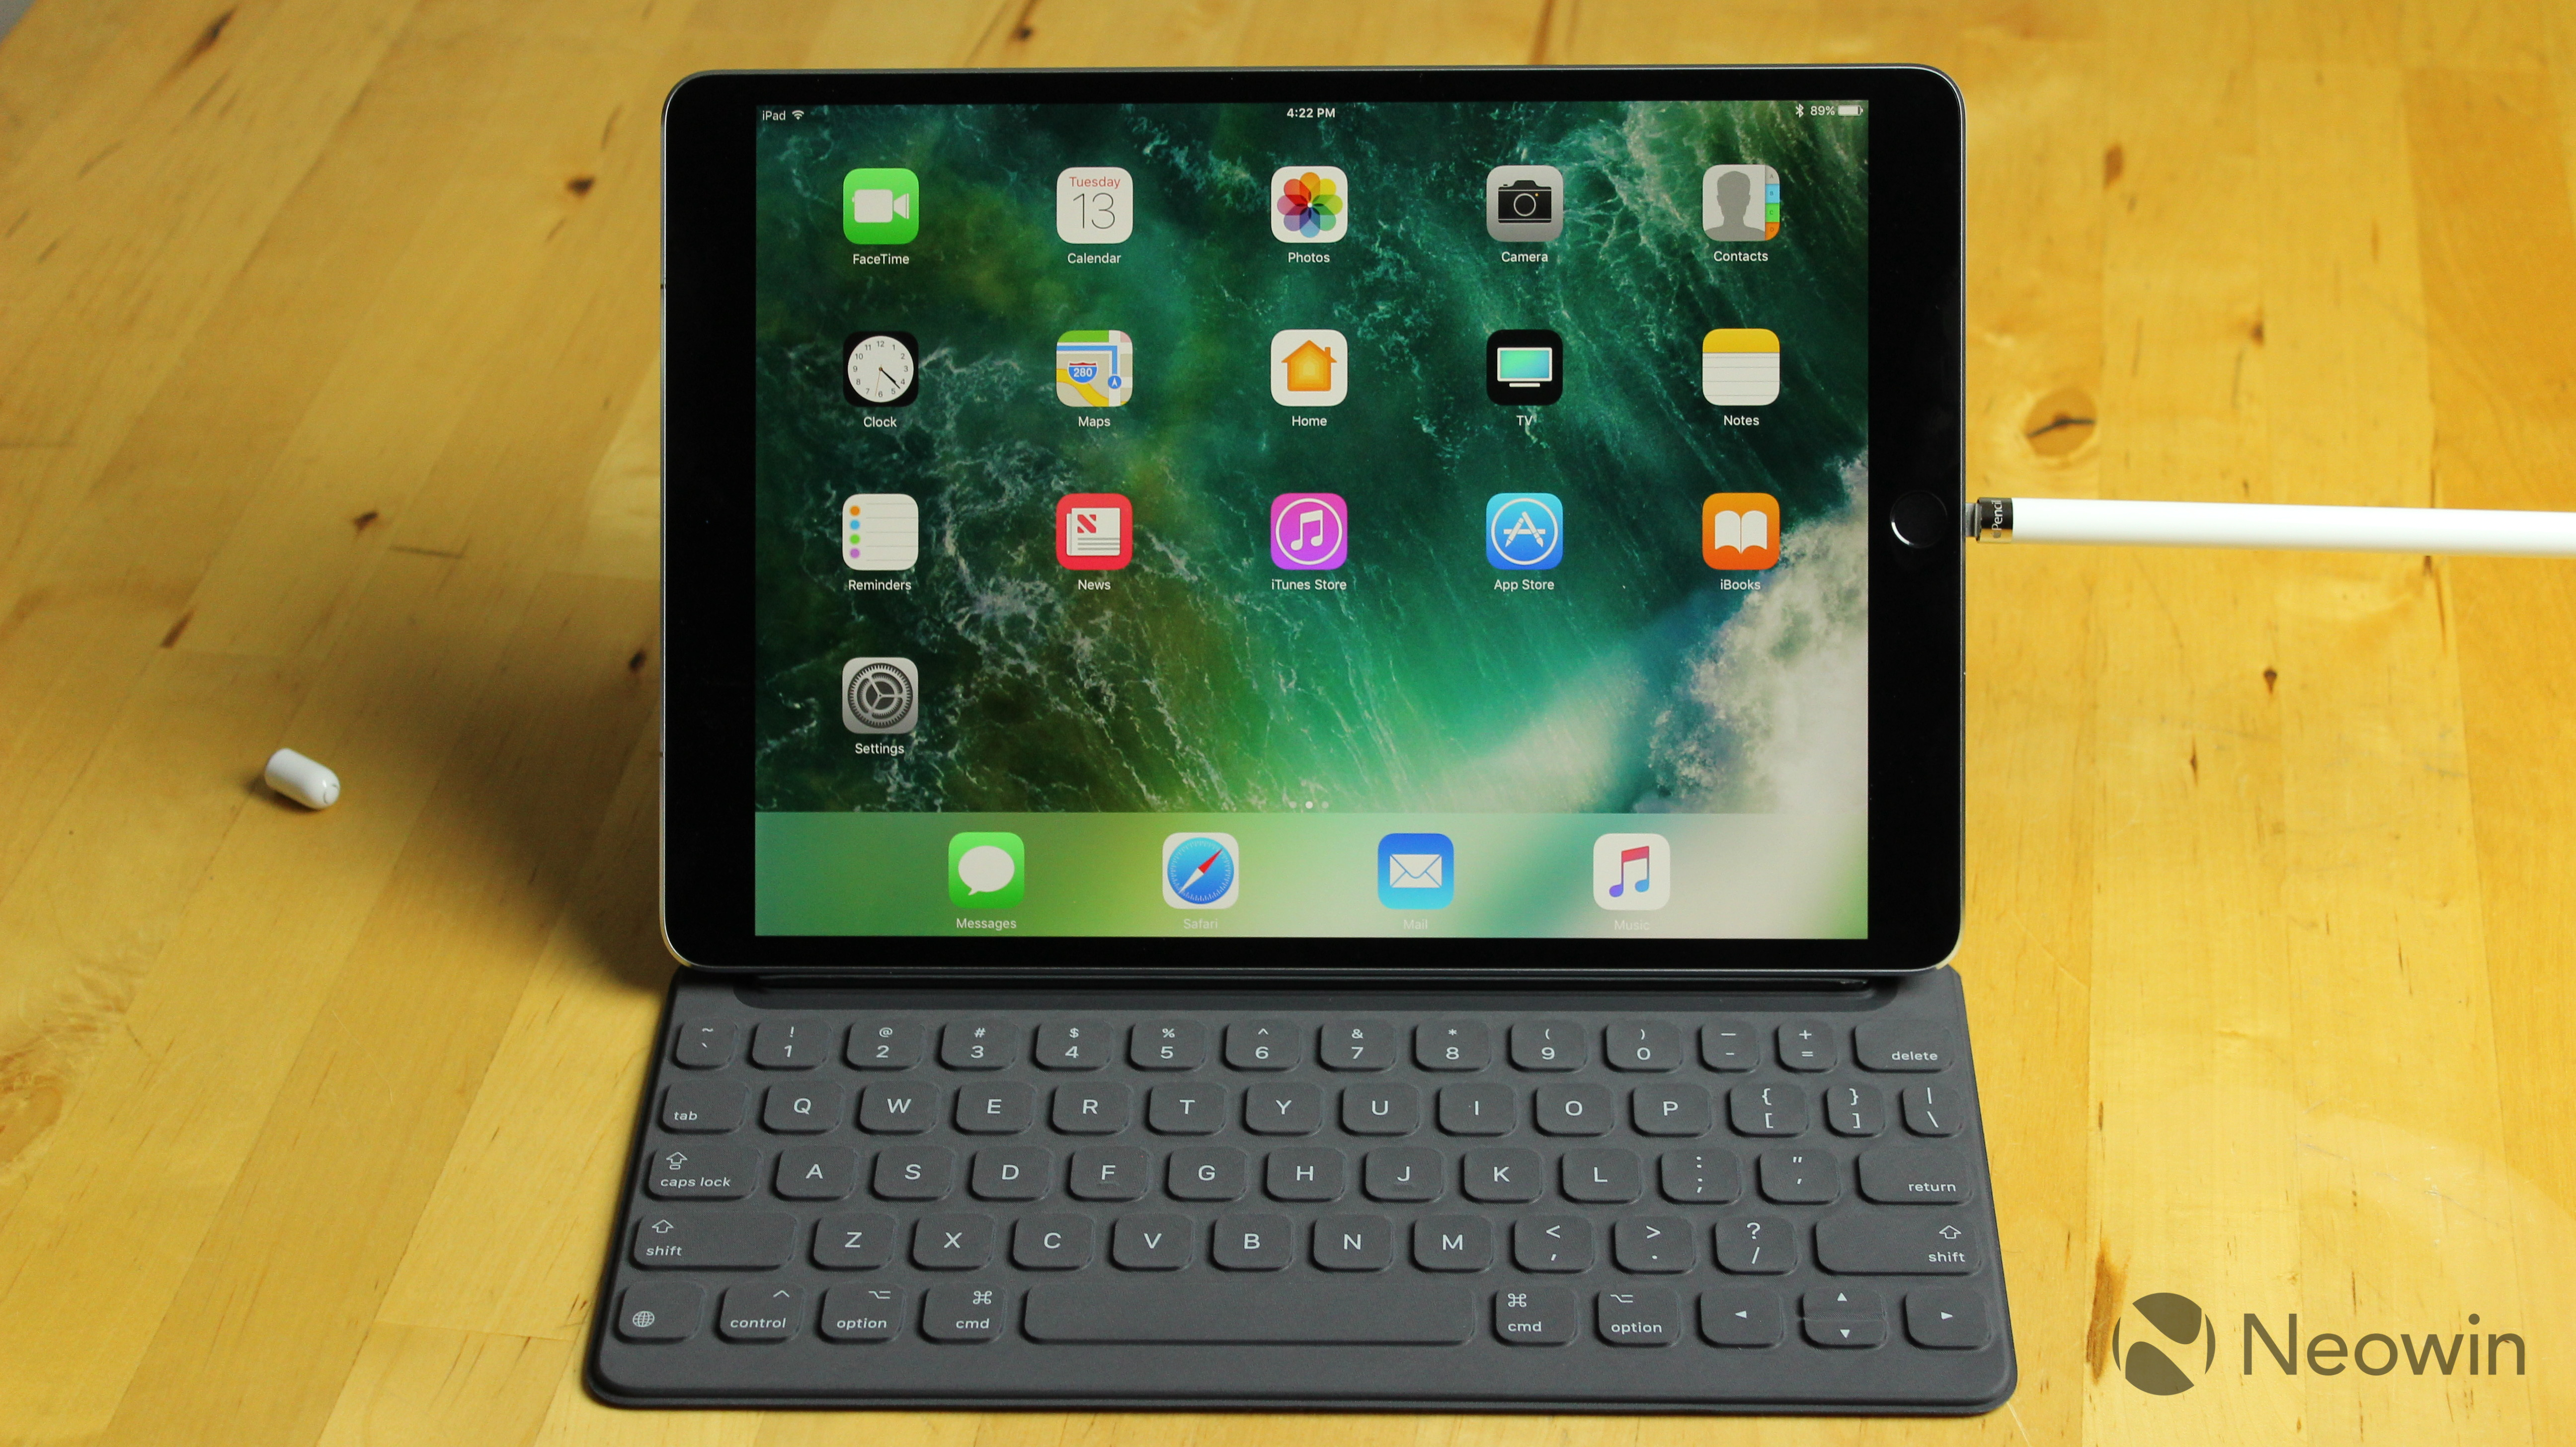 105 Inch Ipad Pro Review Apples 2 In 1 Is Starting To Grow Up 512gb New Silver Wifi Only 1497455512 Img 2173 1497455519 2174 1497455526 2175